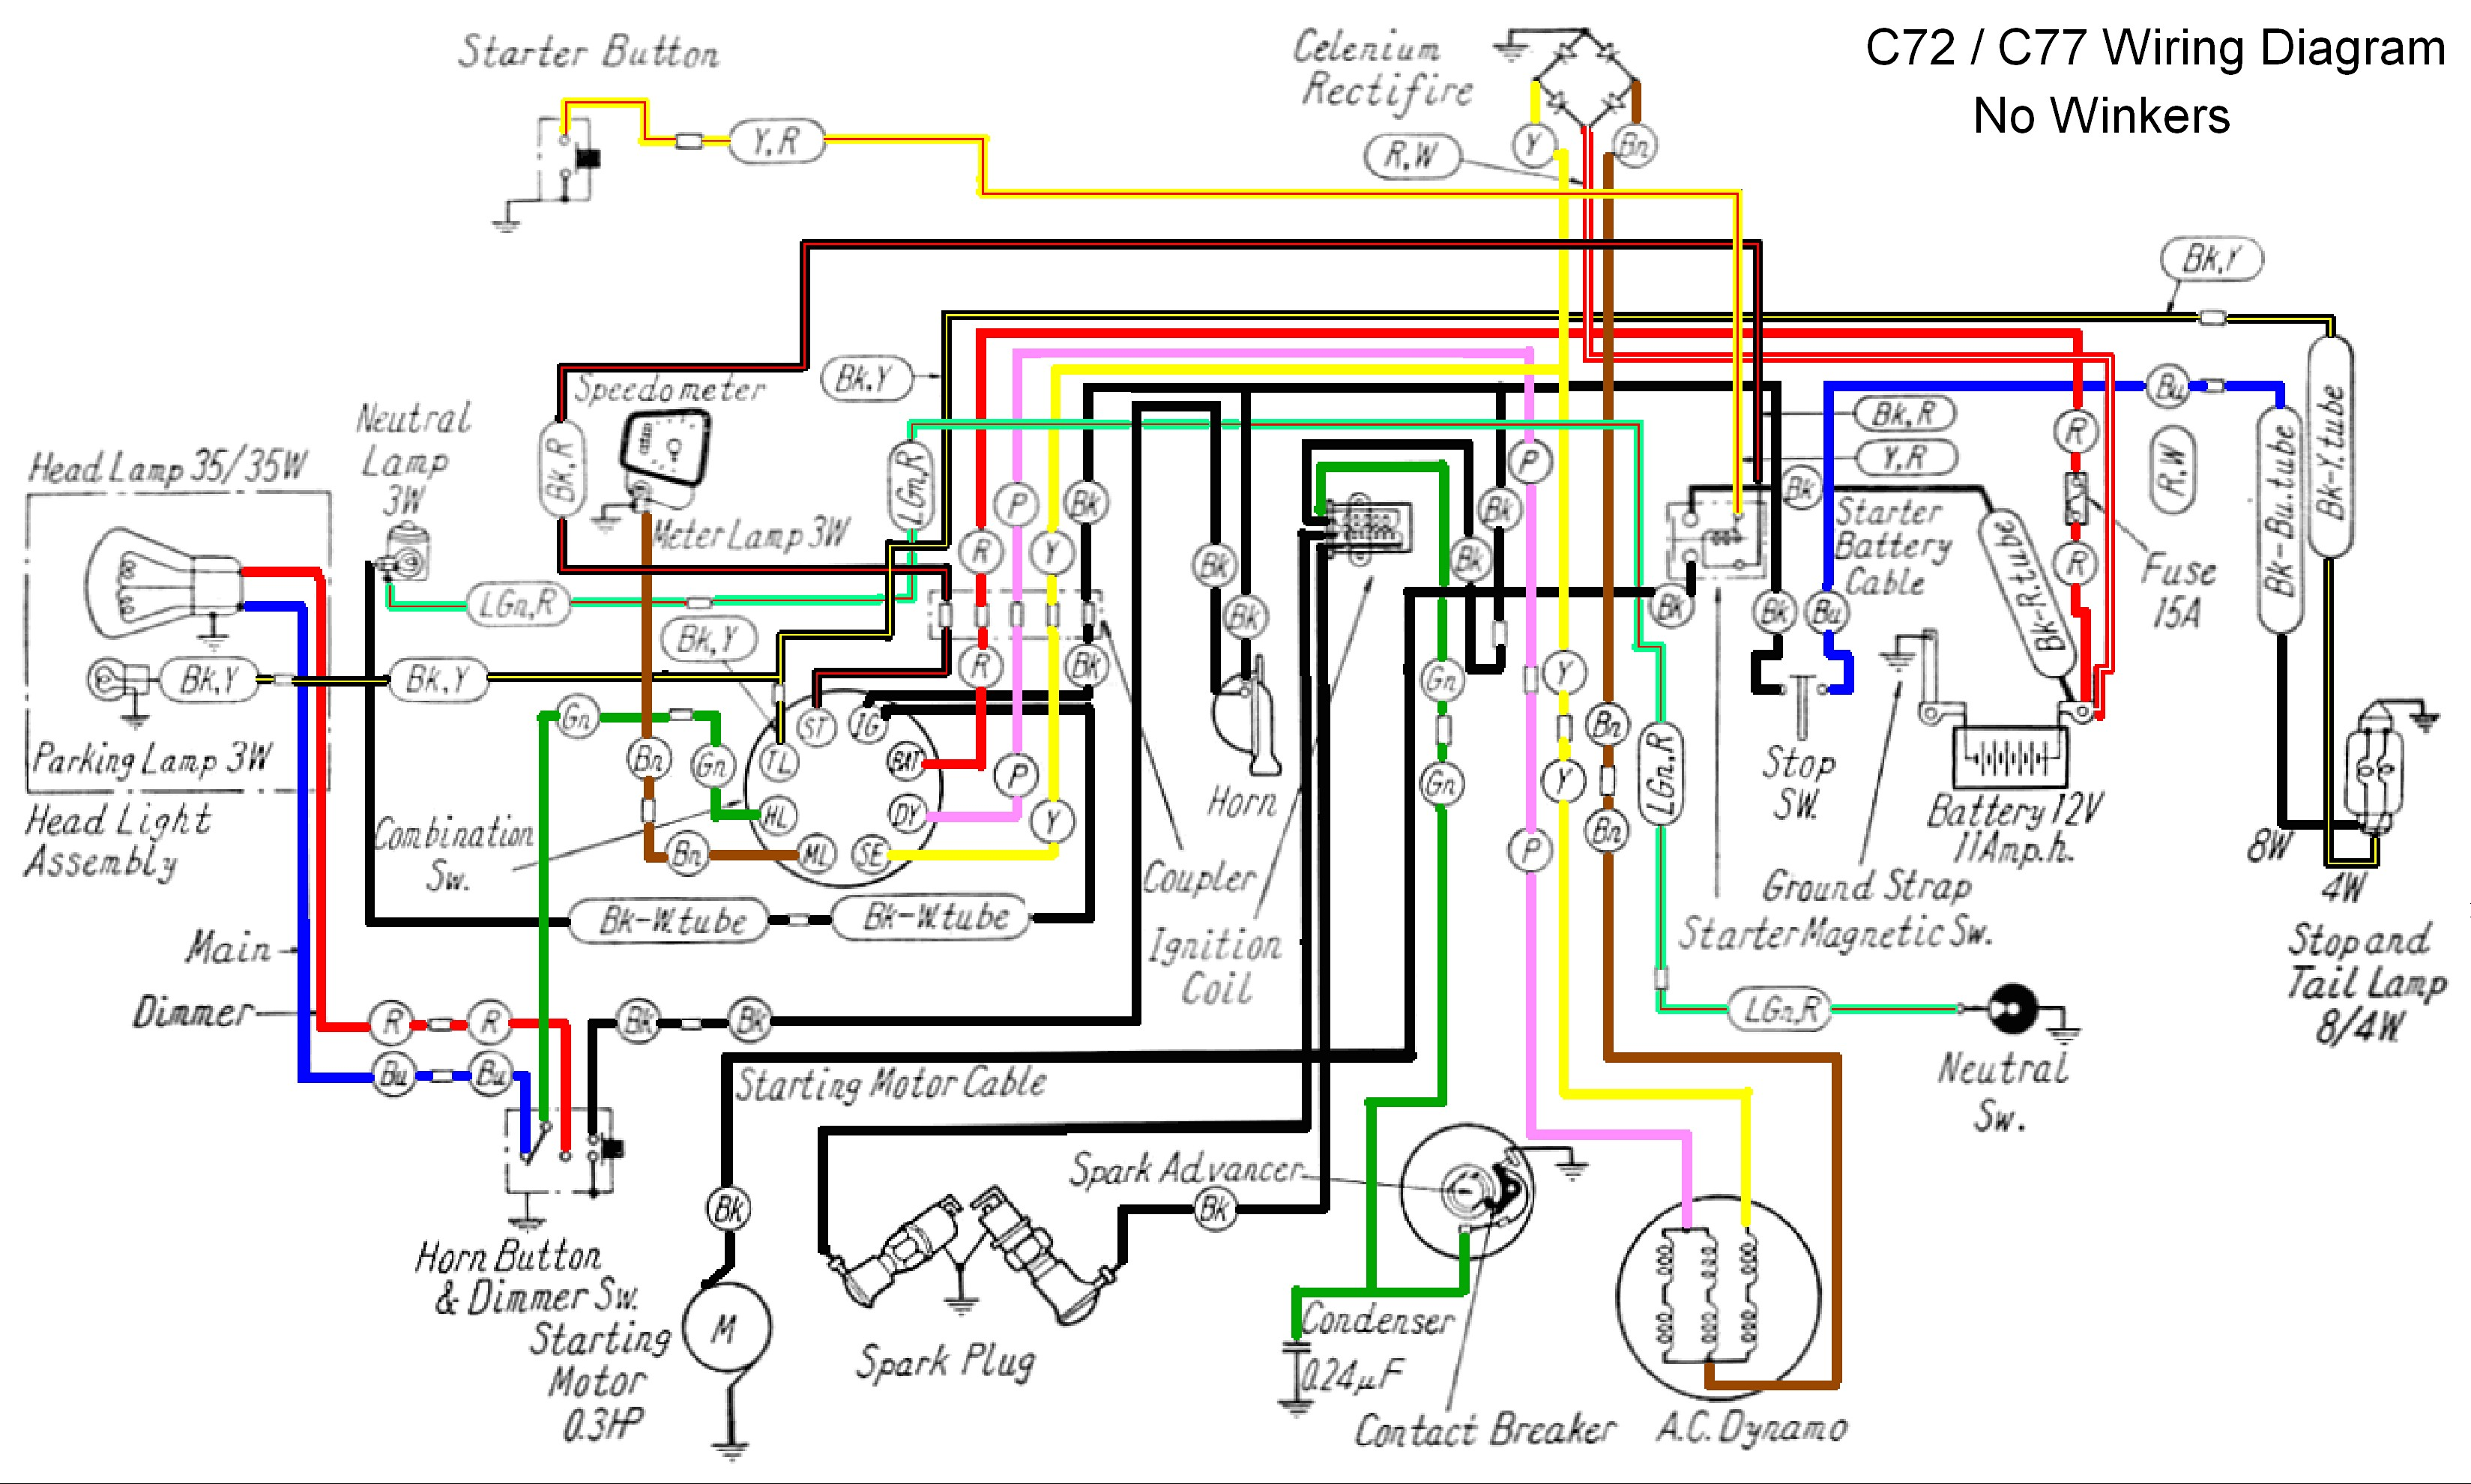 Honda Wiring Diagram Ace 750 And Schematics Shadow Aero Data Besides Hobbit